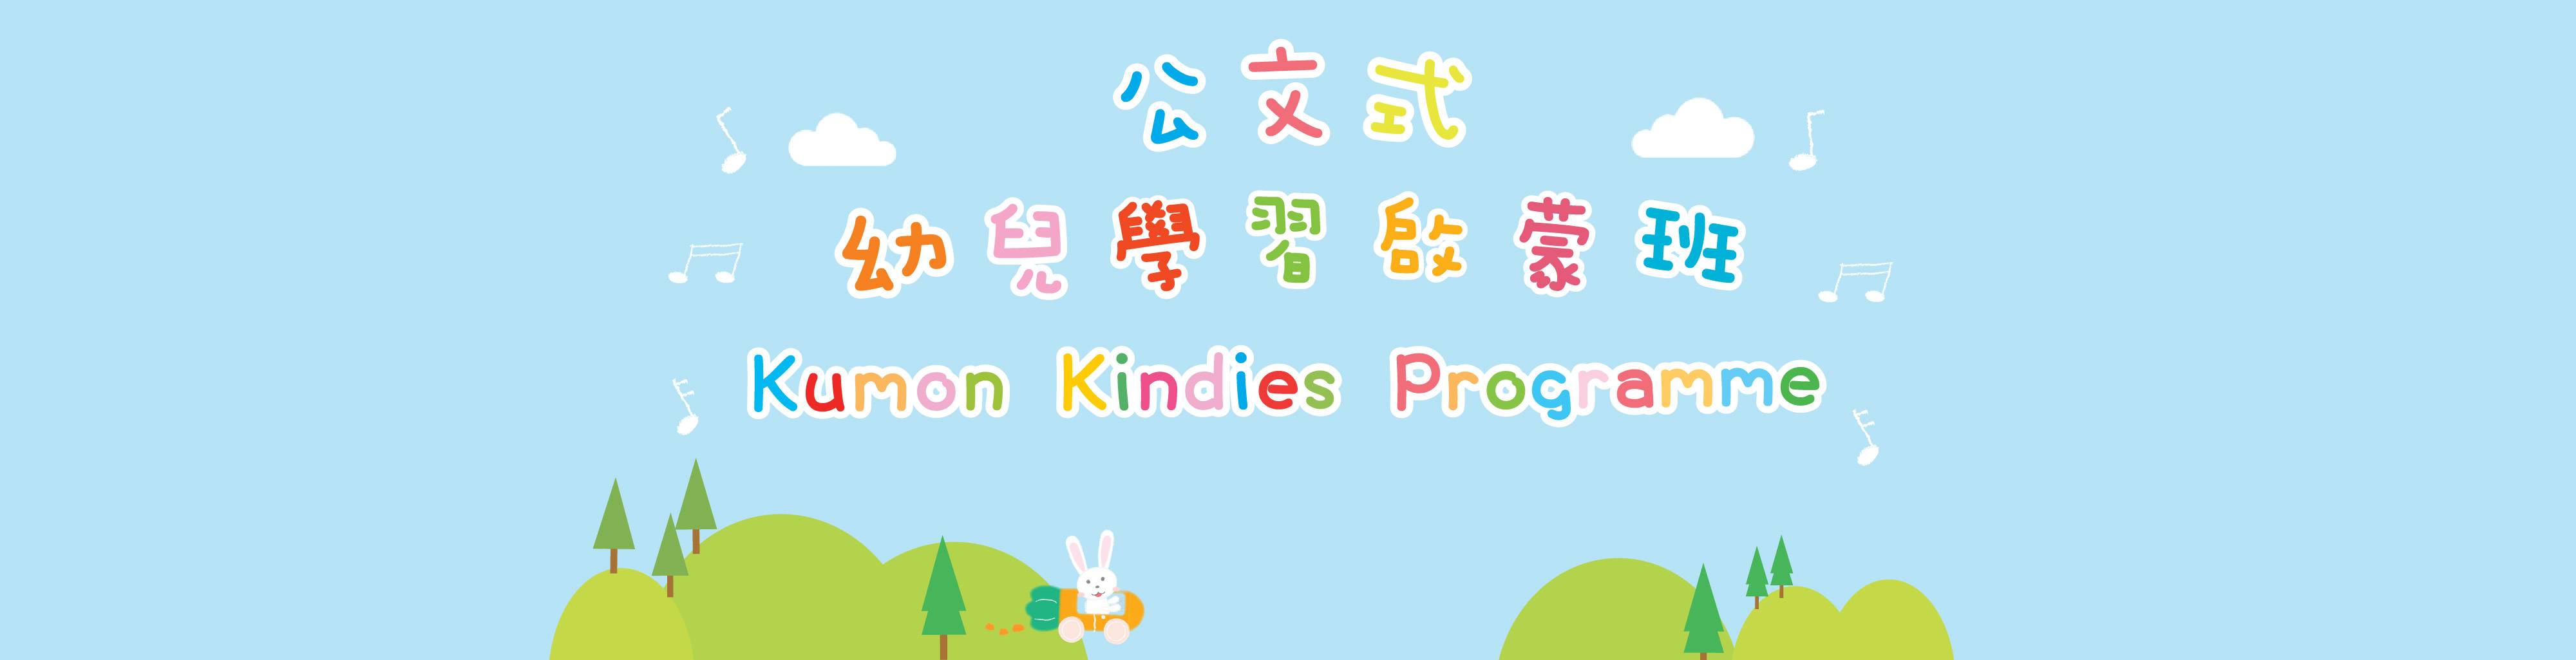 Kindies_websitebanner-01